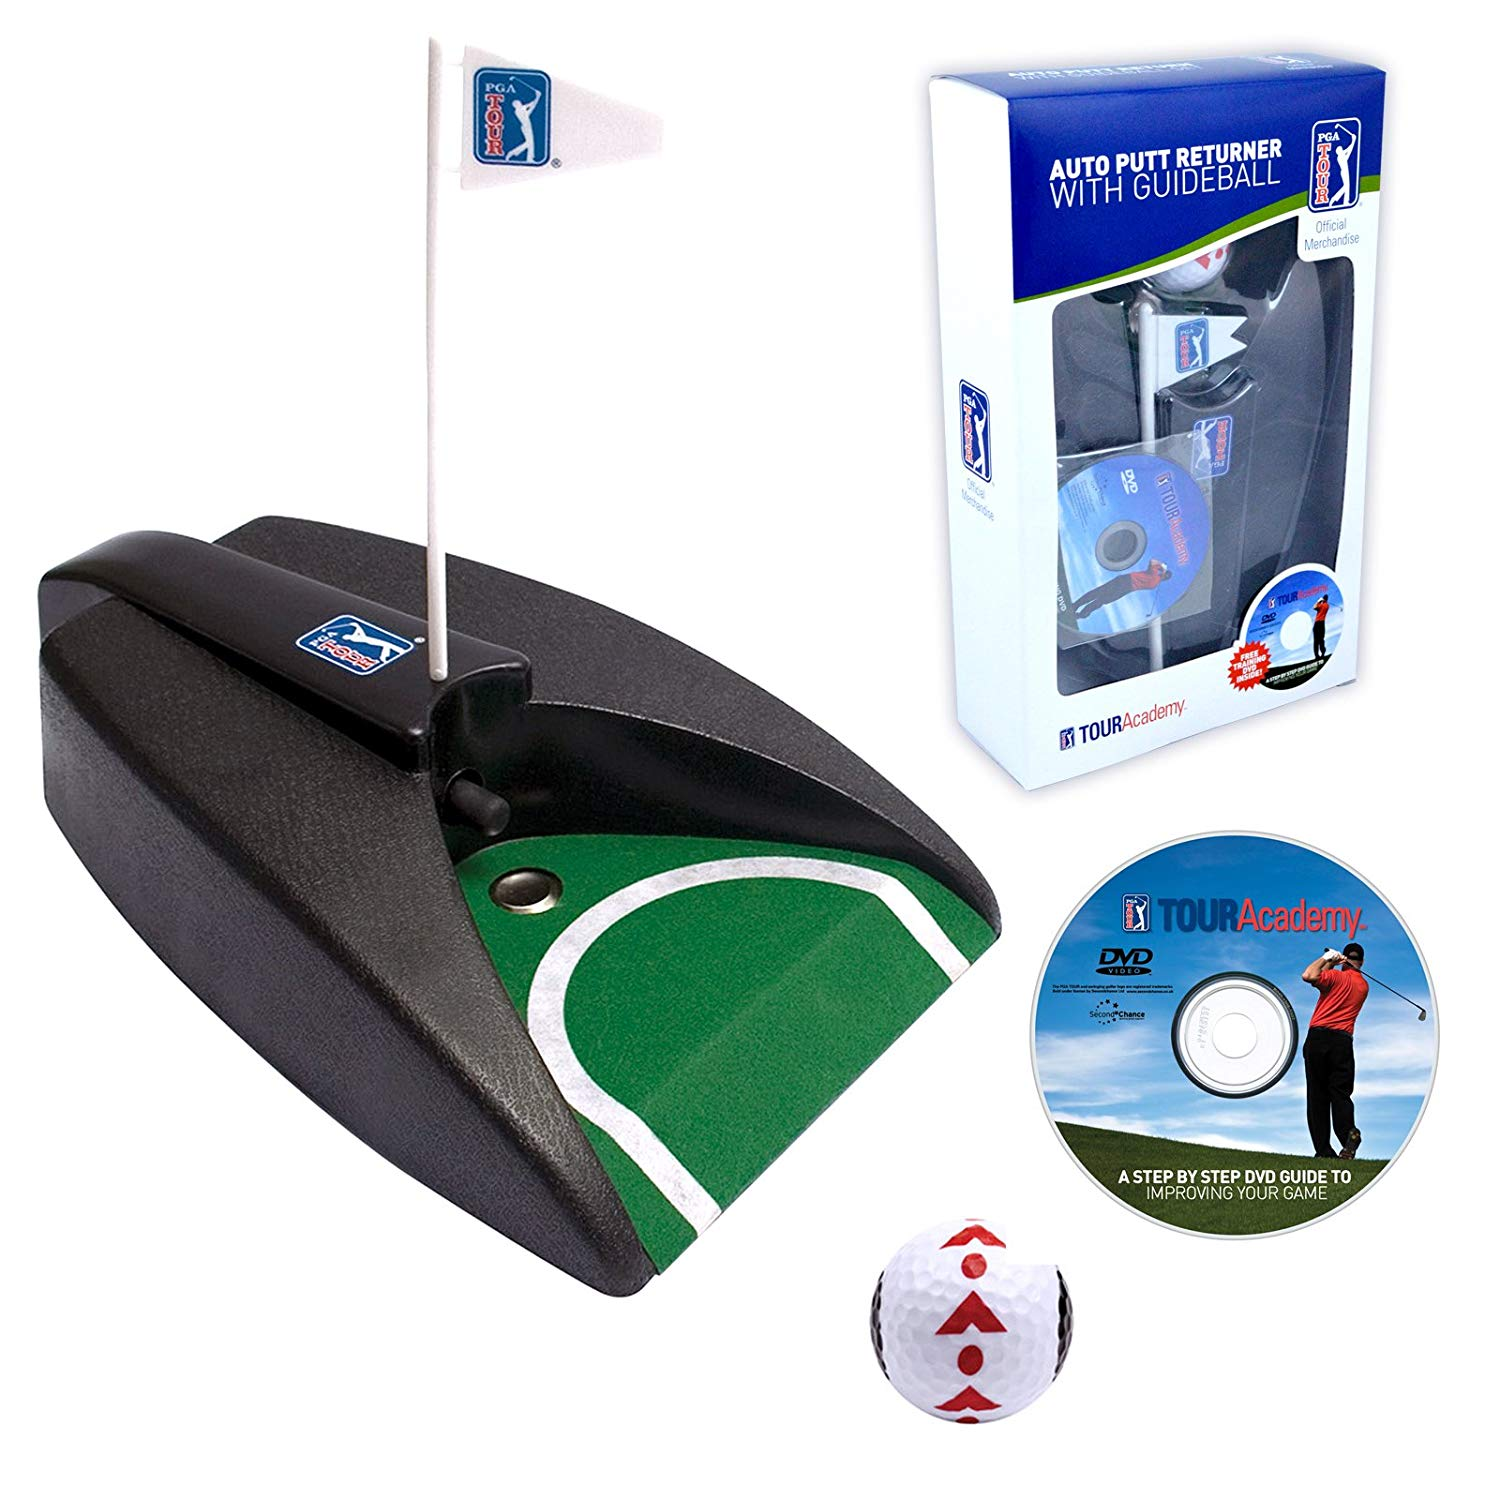 PGA Tour Auto Return Putter W DVD